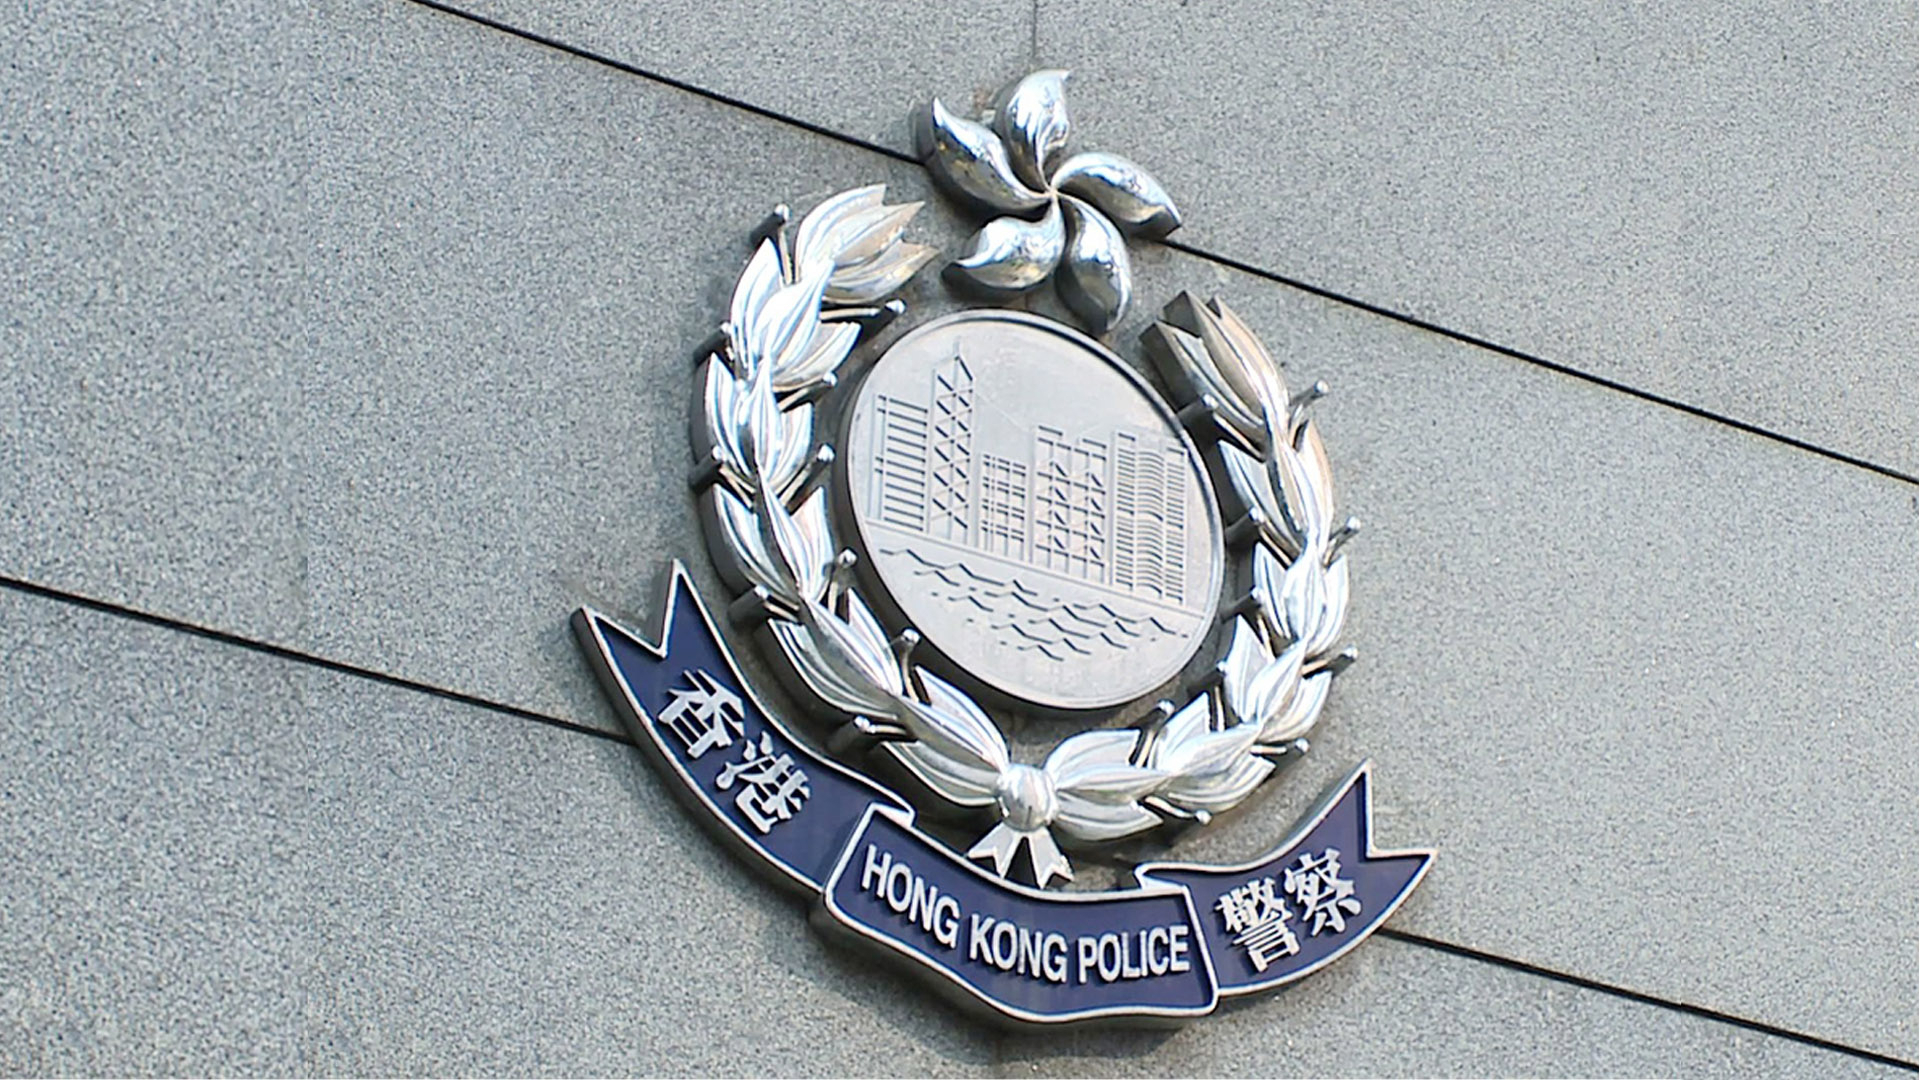 Hong Kong police arrest 8 people for unauthorized assembly on July 1